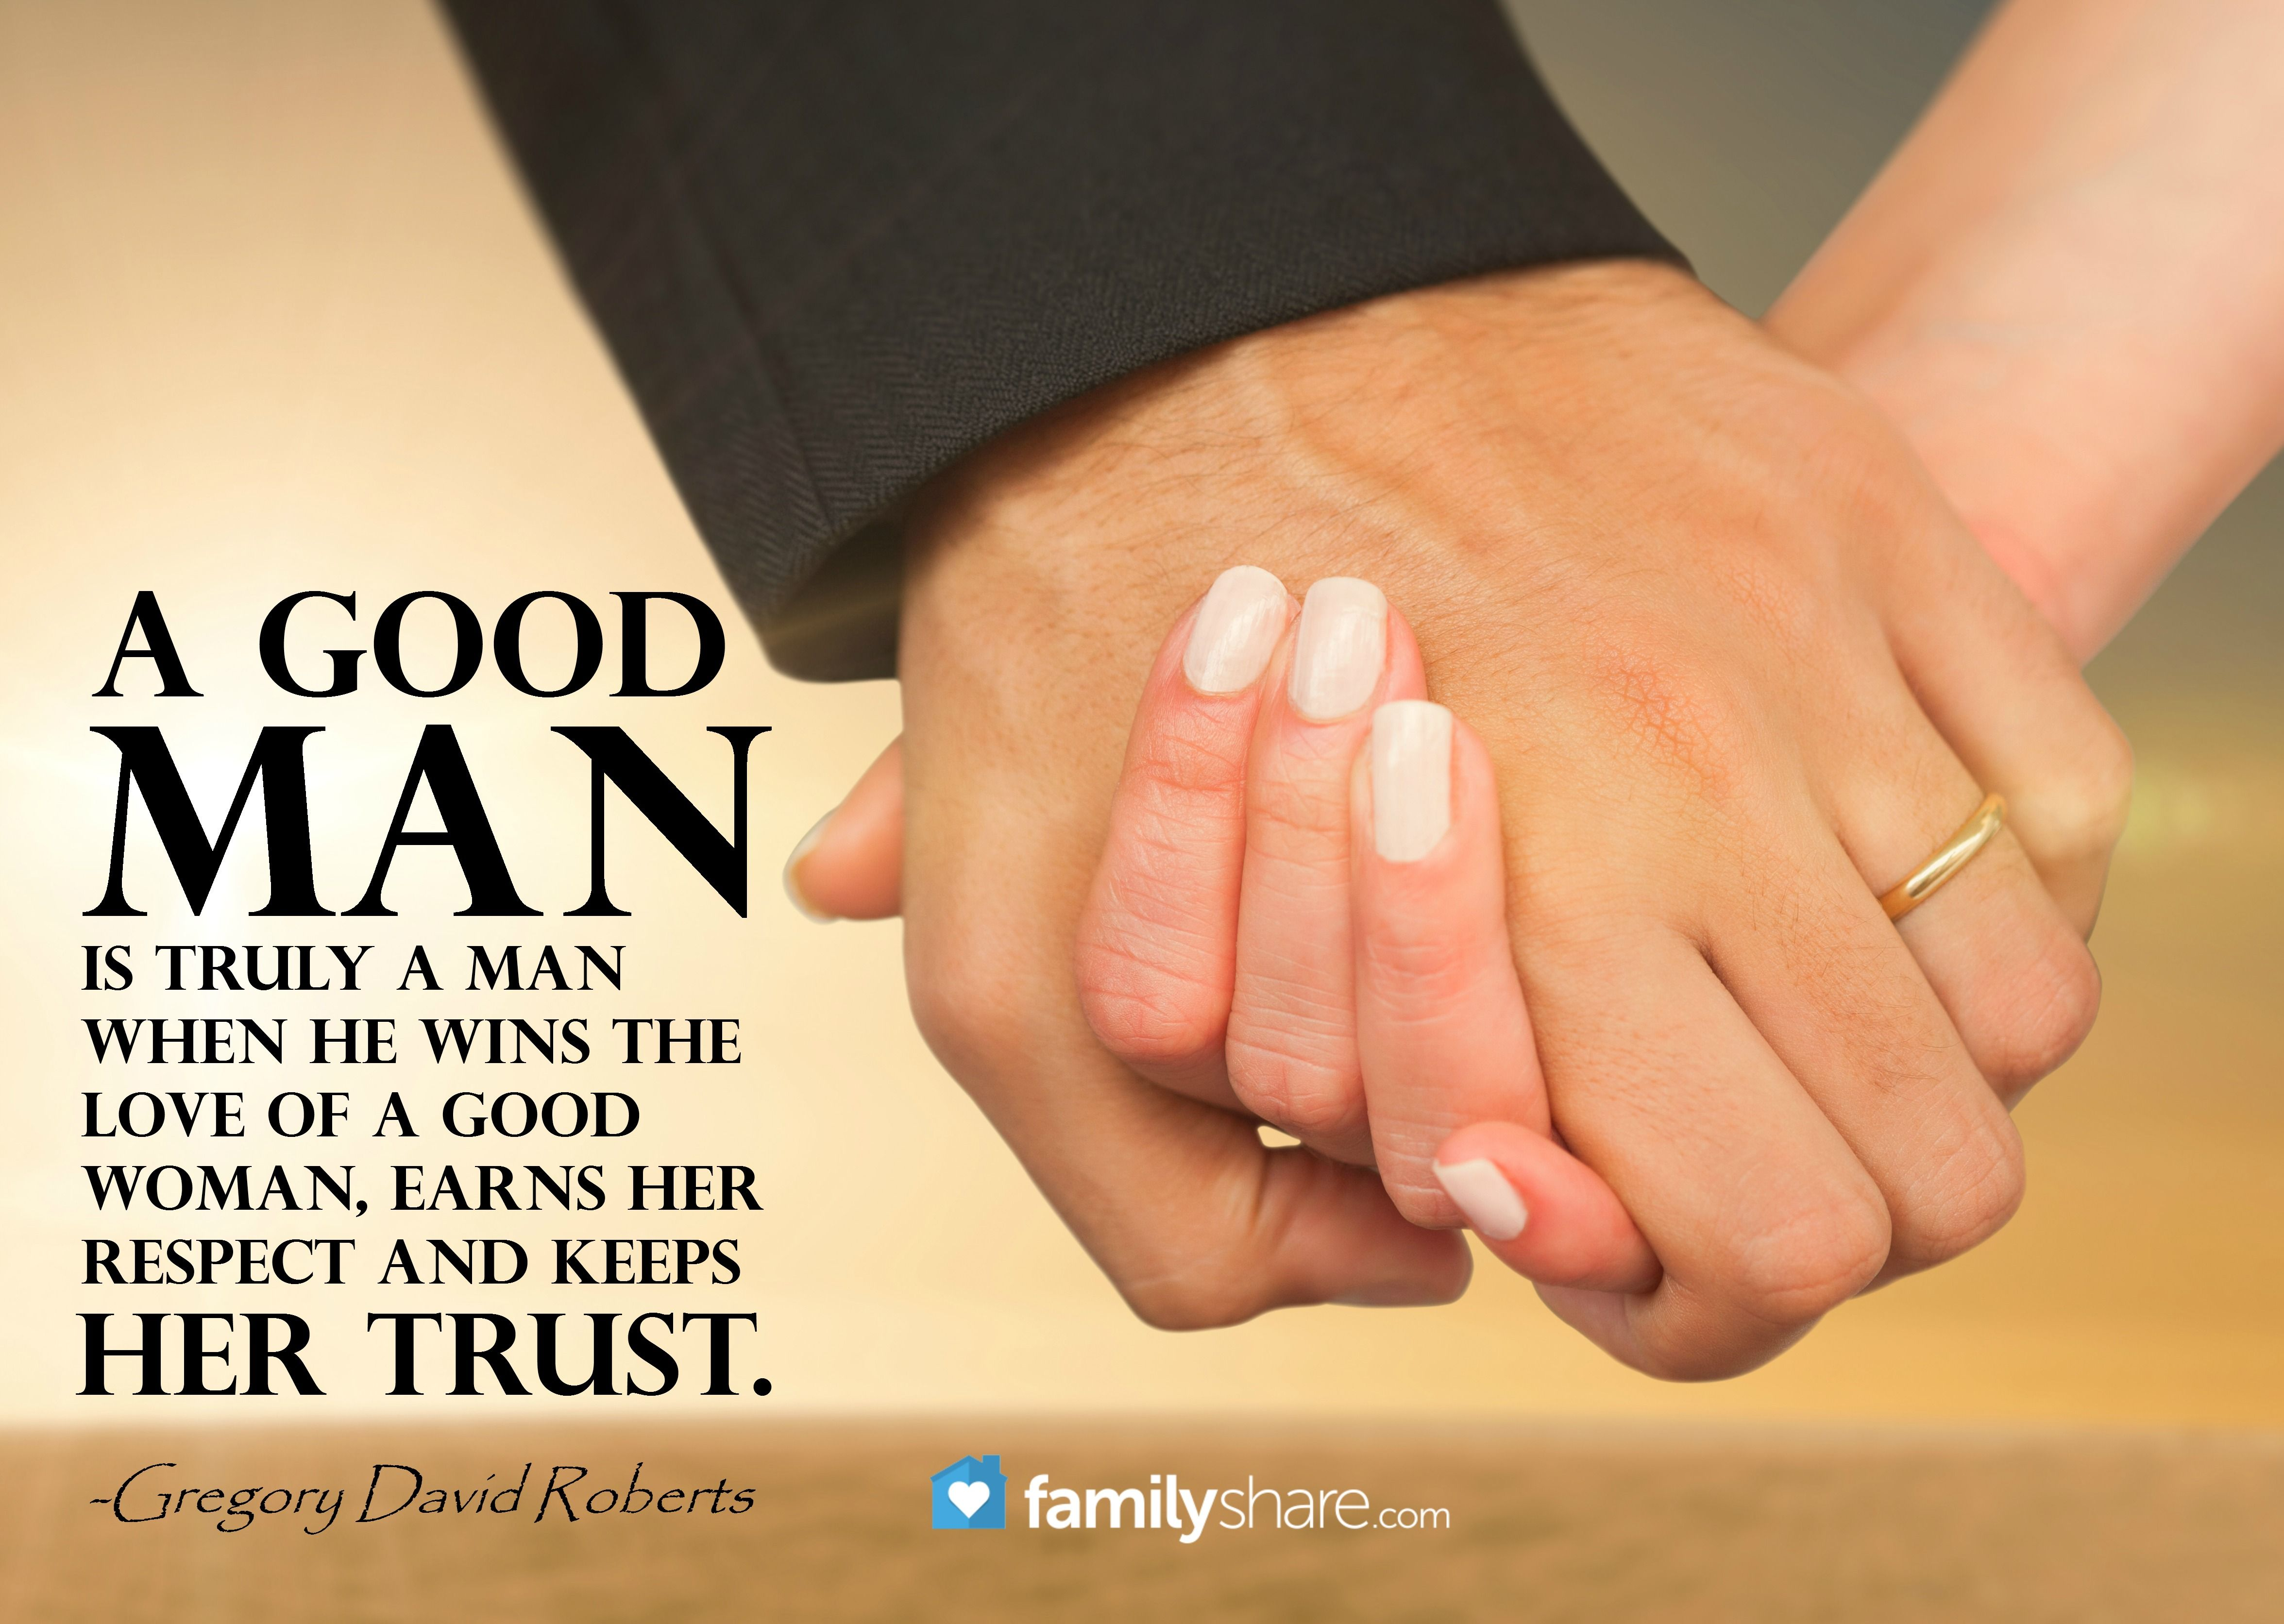 A good man is truly a man when he wins the love of a good woman